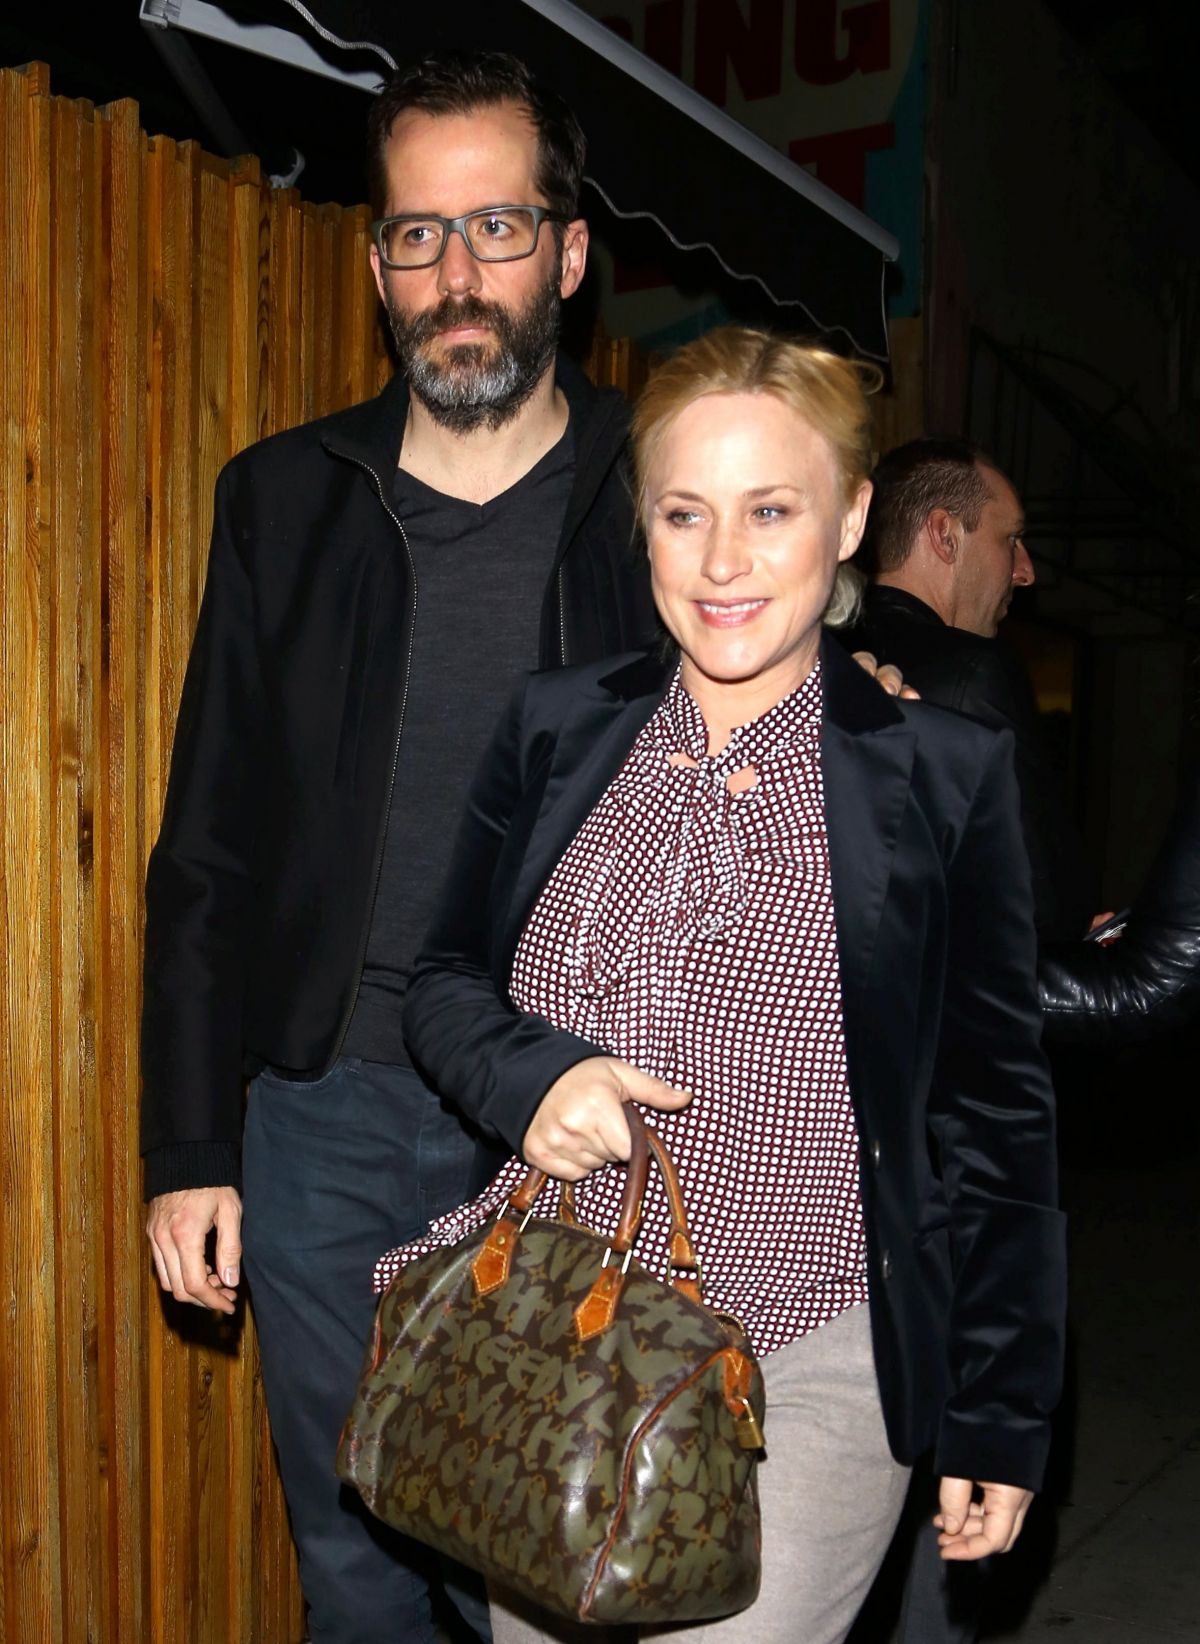 PATRICIA ARQUETTE at Nice Guy Club in West Hollywood 01/23/2016